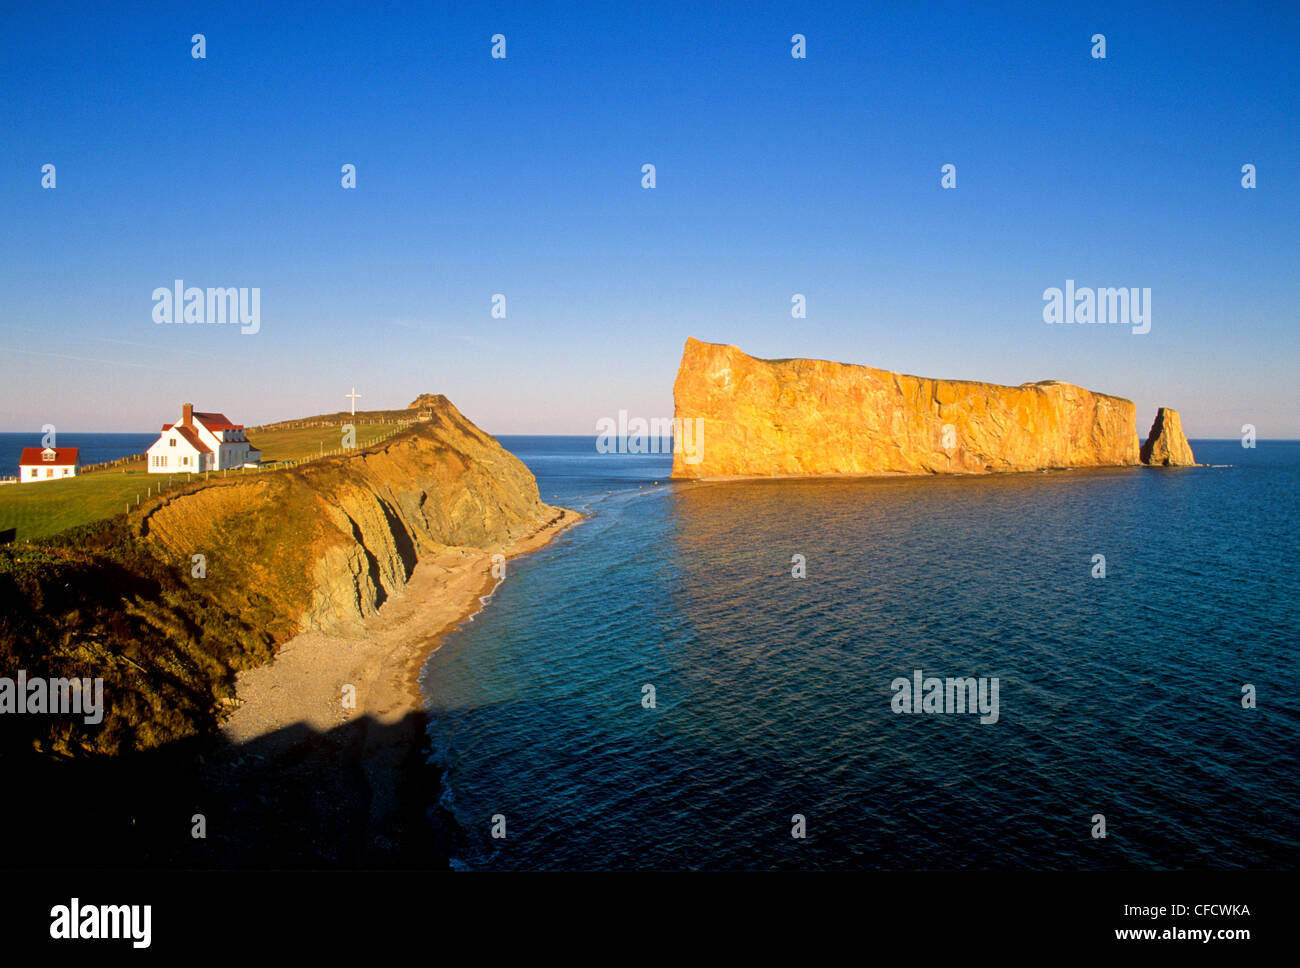 House on cliff, Perce Rock, Gaspésie, Quebec, Canada - Stock Image